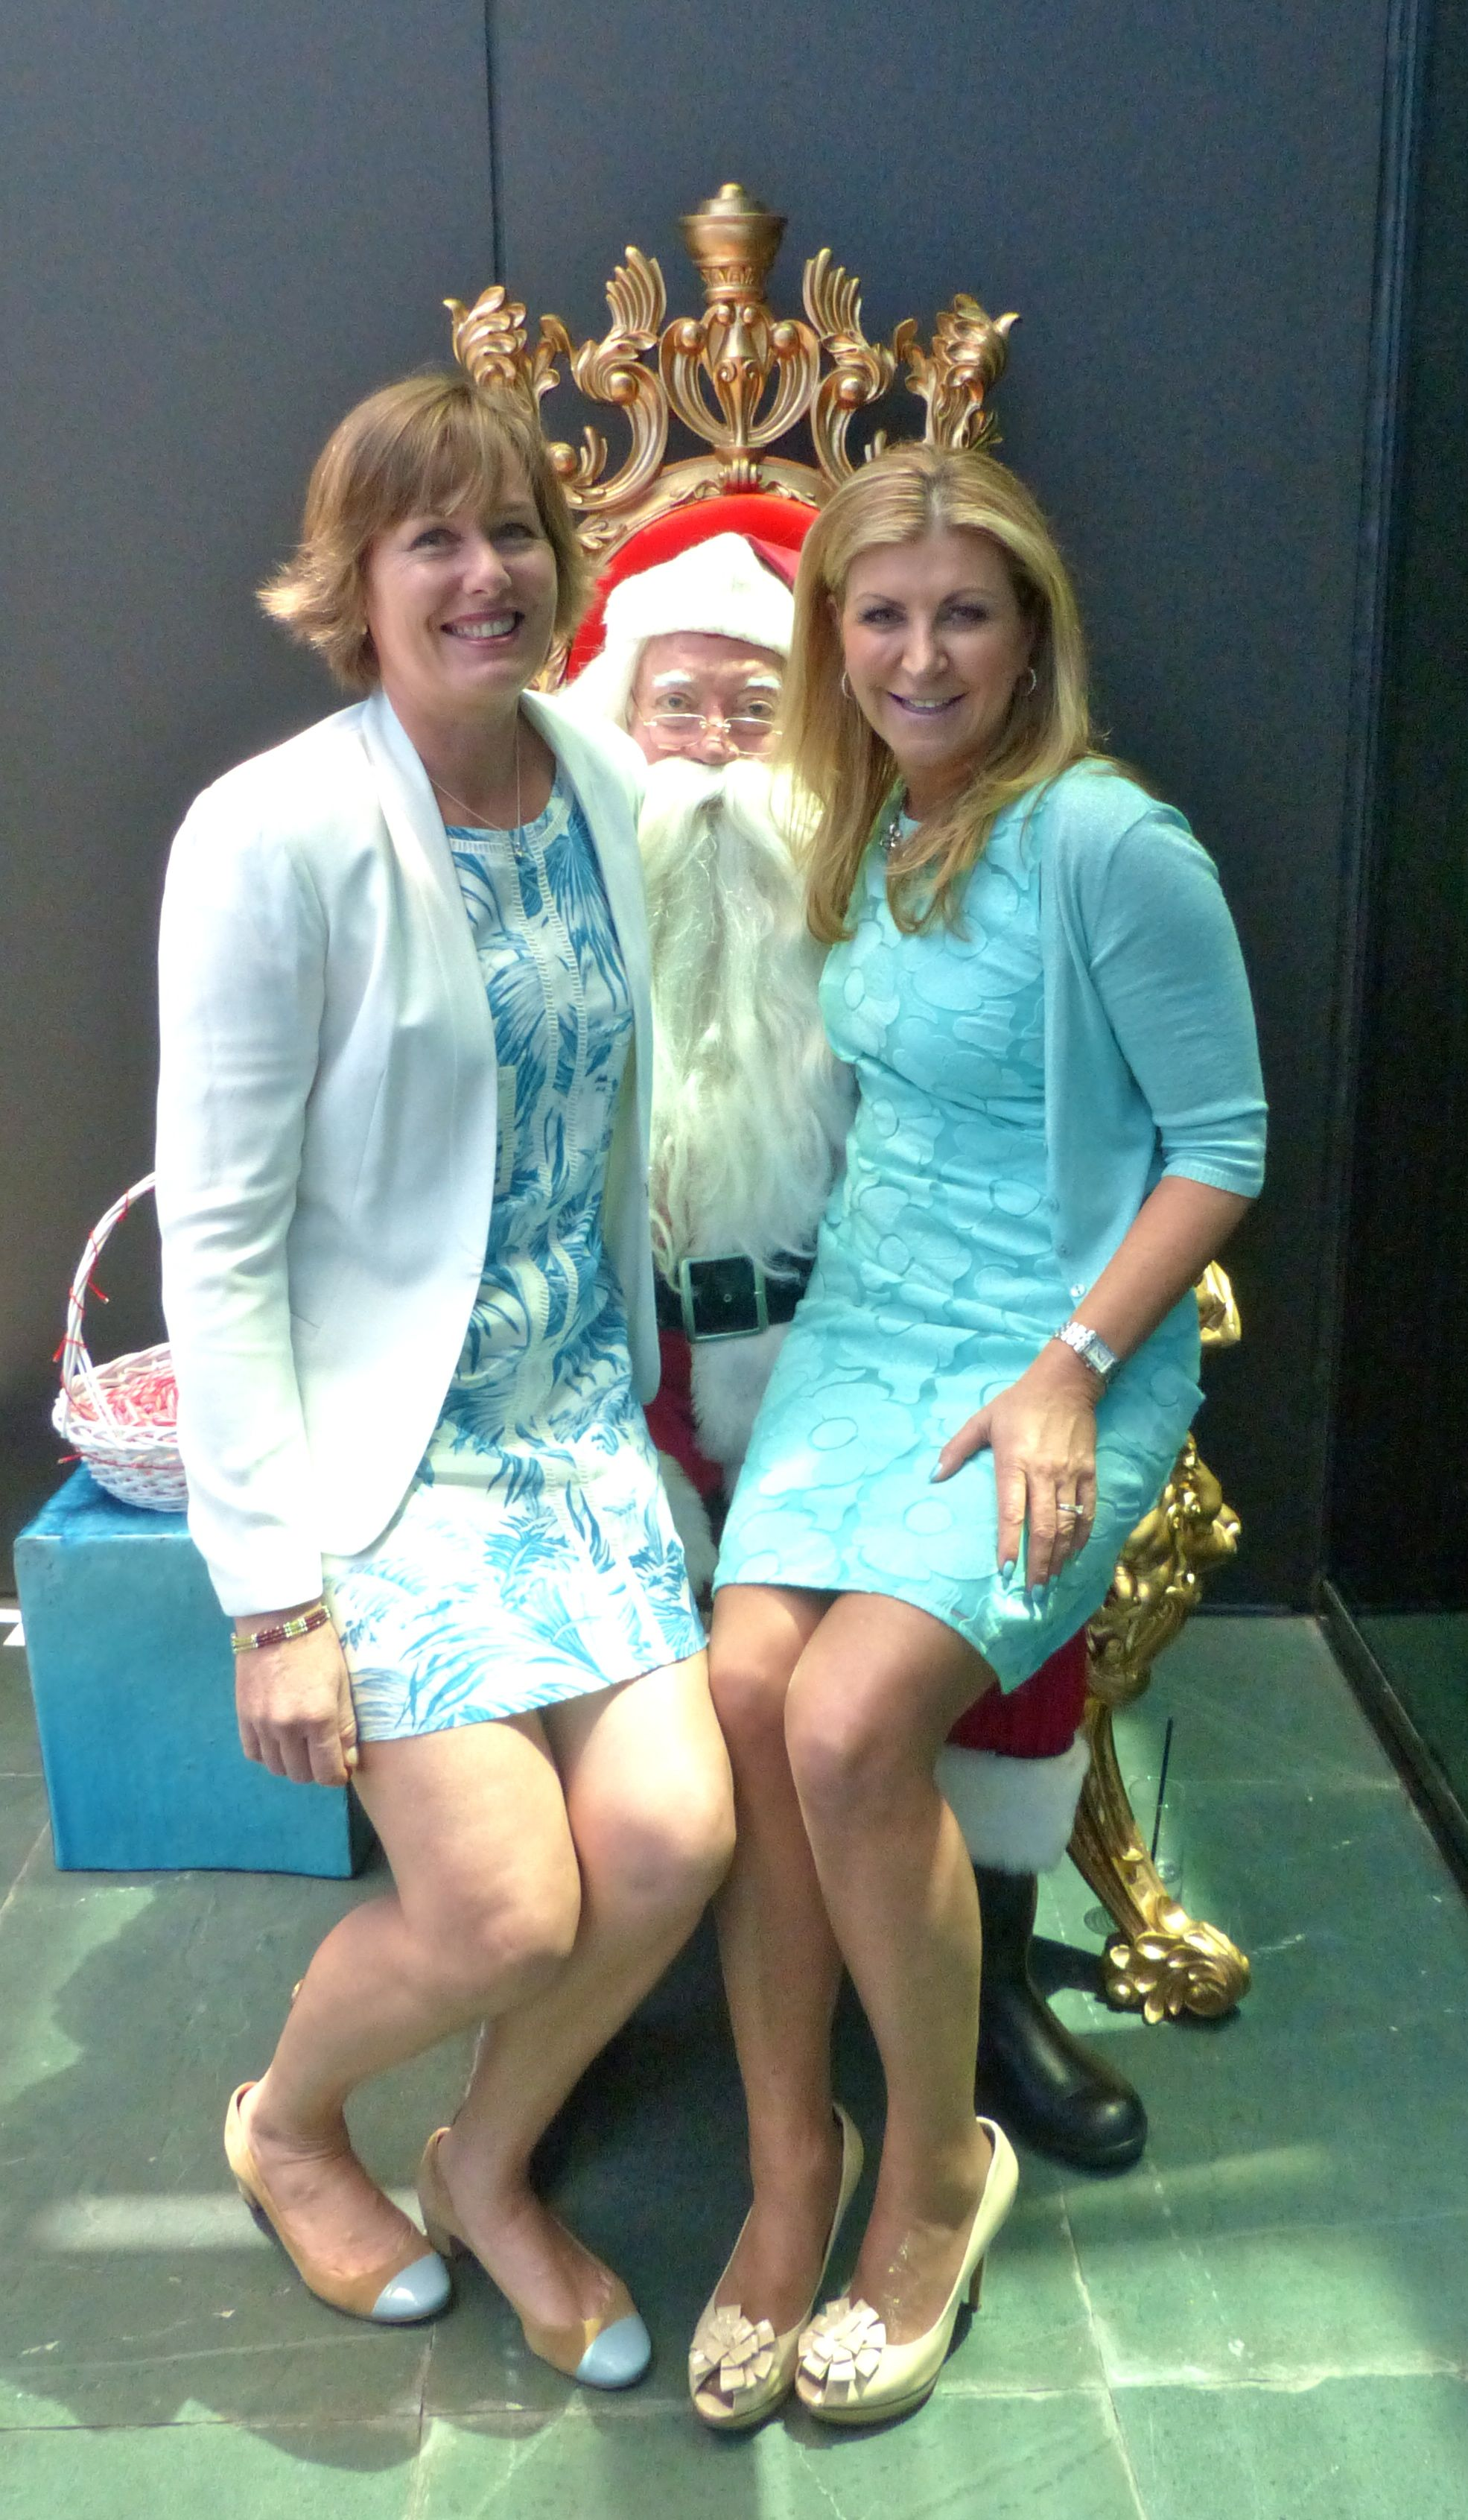 Never too old to sit on Santa's knee - me and Herald Sun columnist Wendy Tuohy